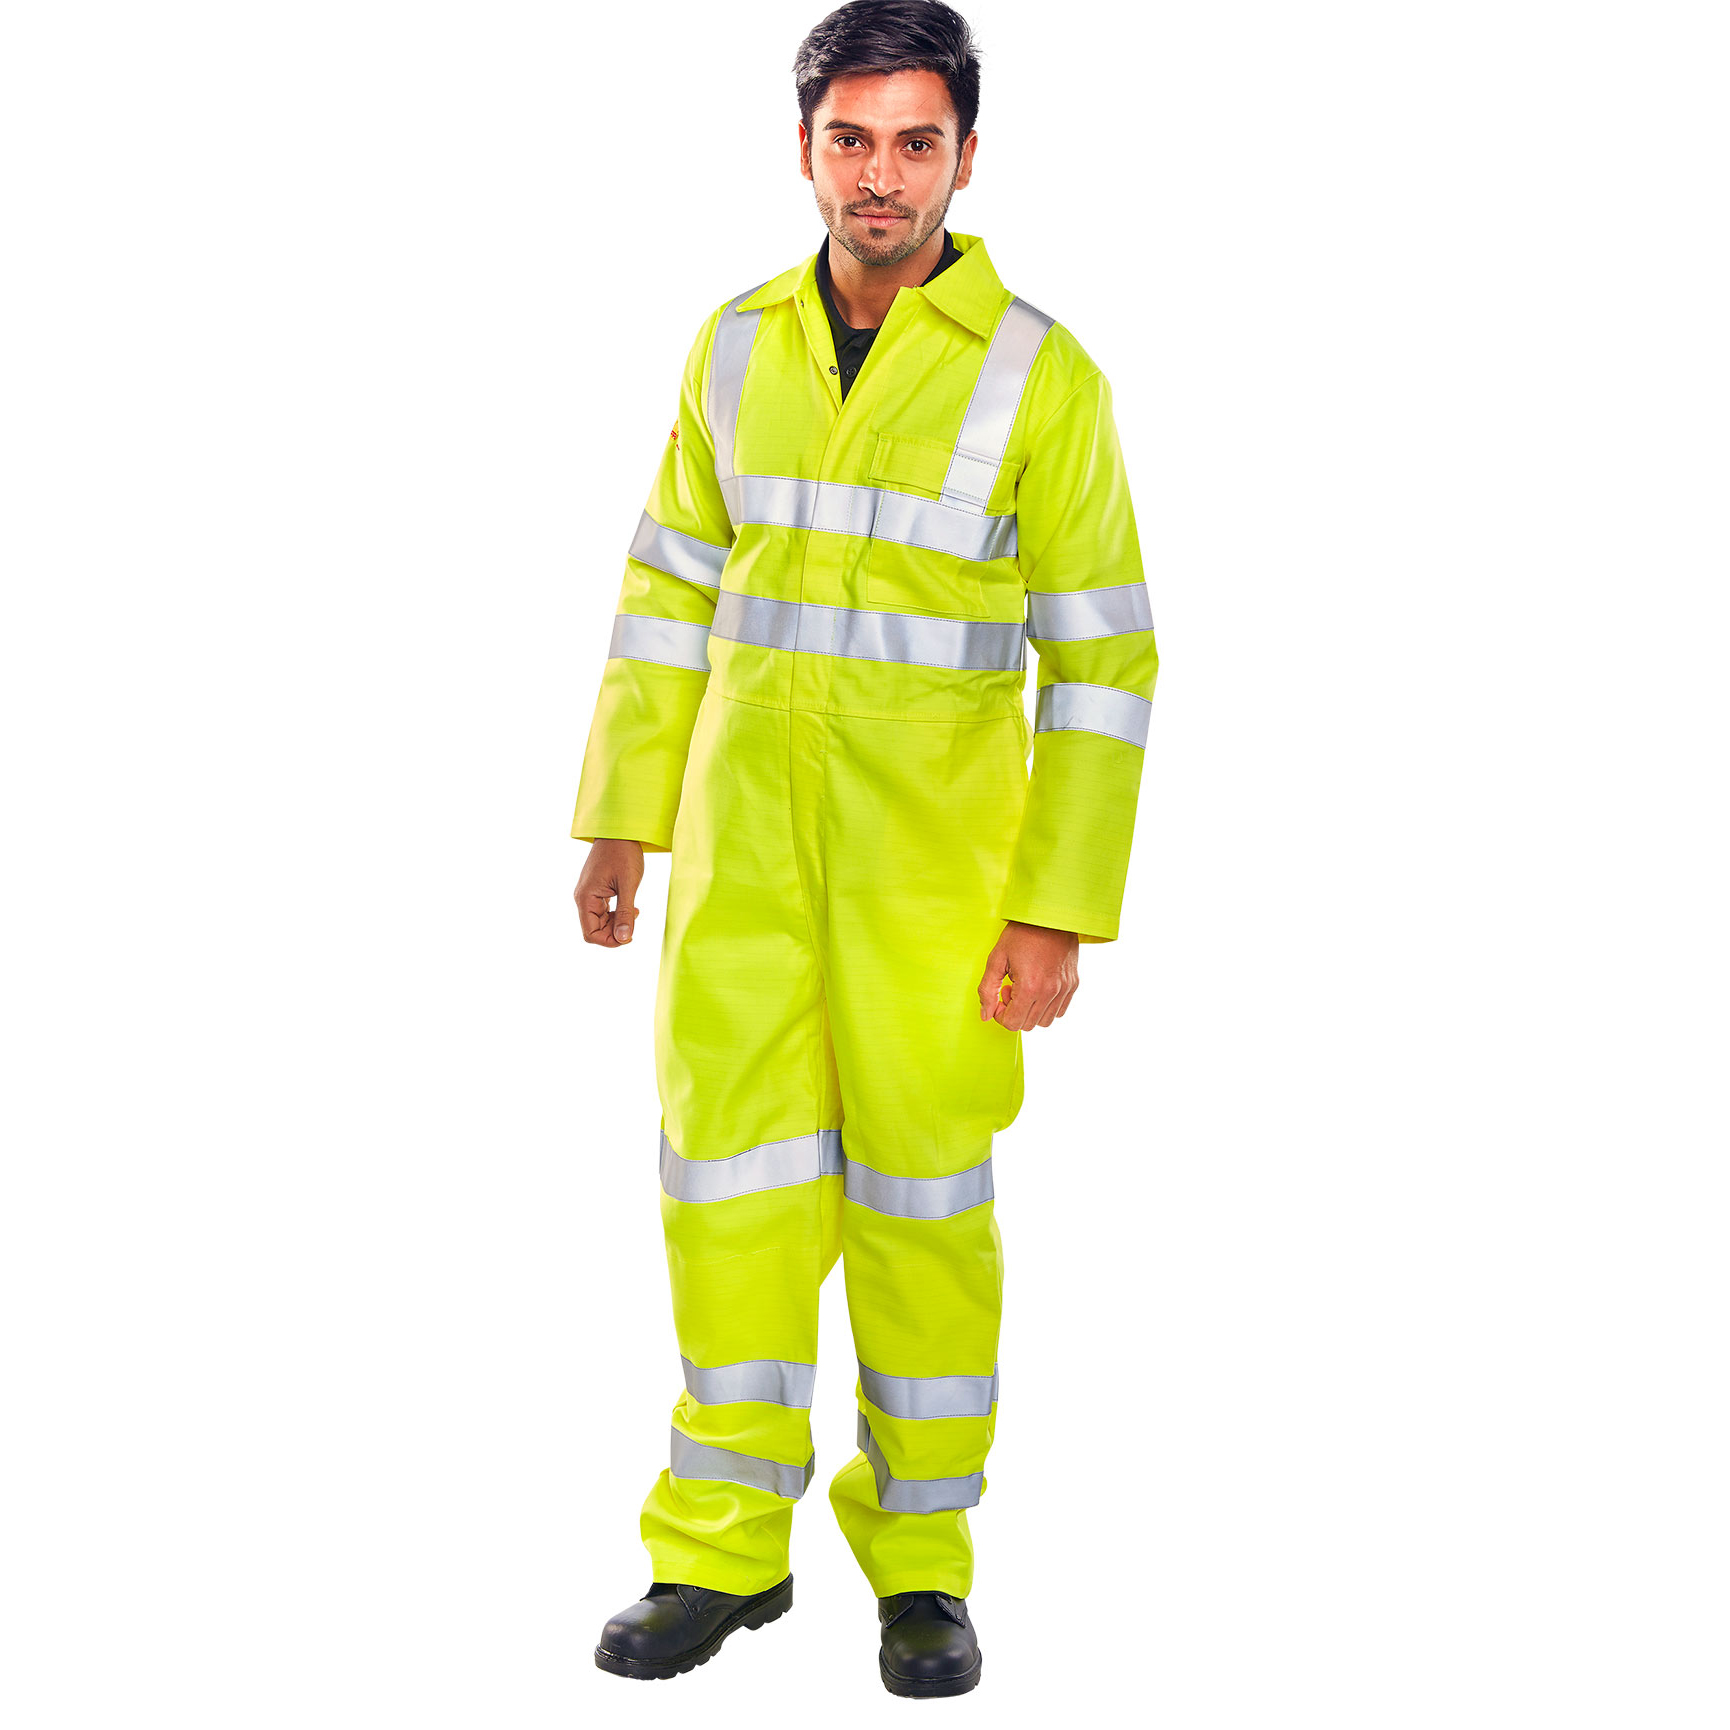 Coveralls / Overalls Click Fire Retardant Tesla Boilersuit Hi-Vis EN471 Size 56 Yell Ref CFRASTEBSSY56 *Up to 3 Day Leadtime*